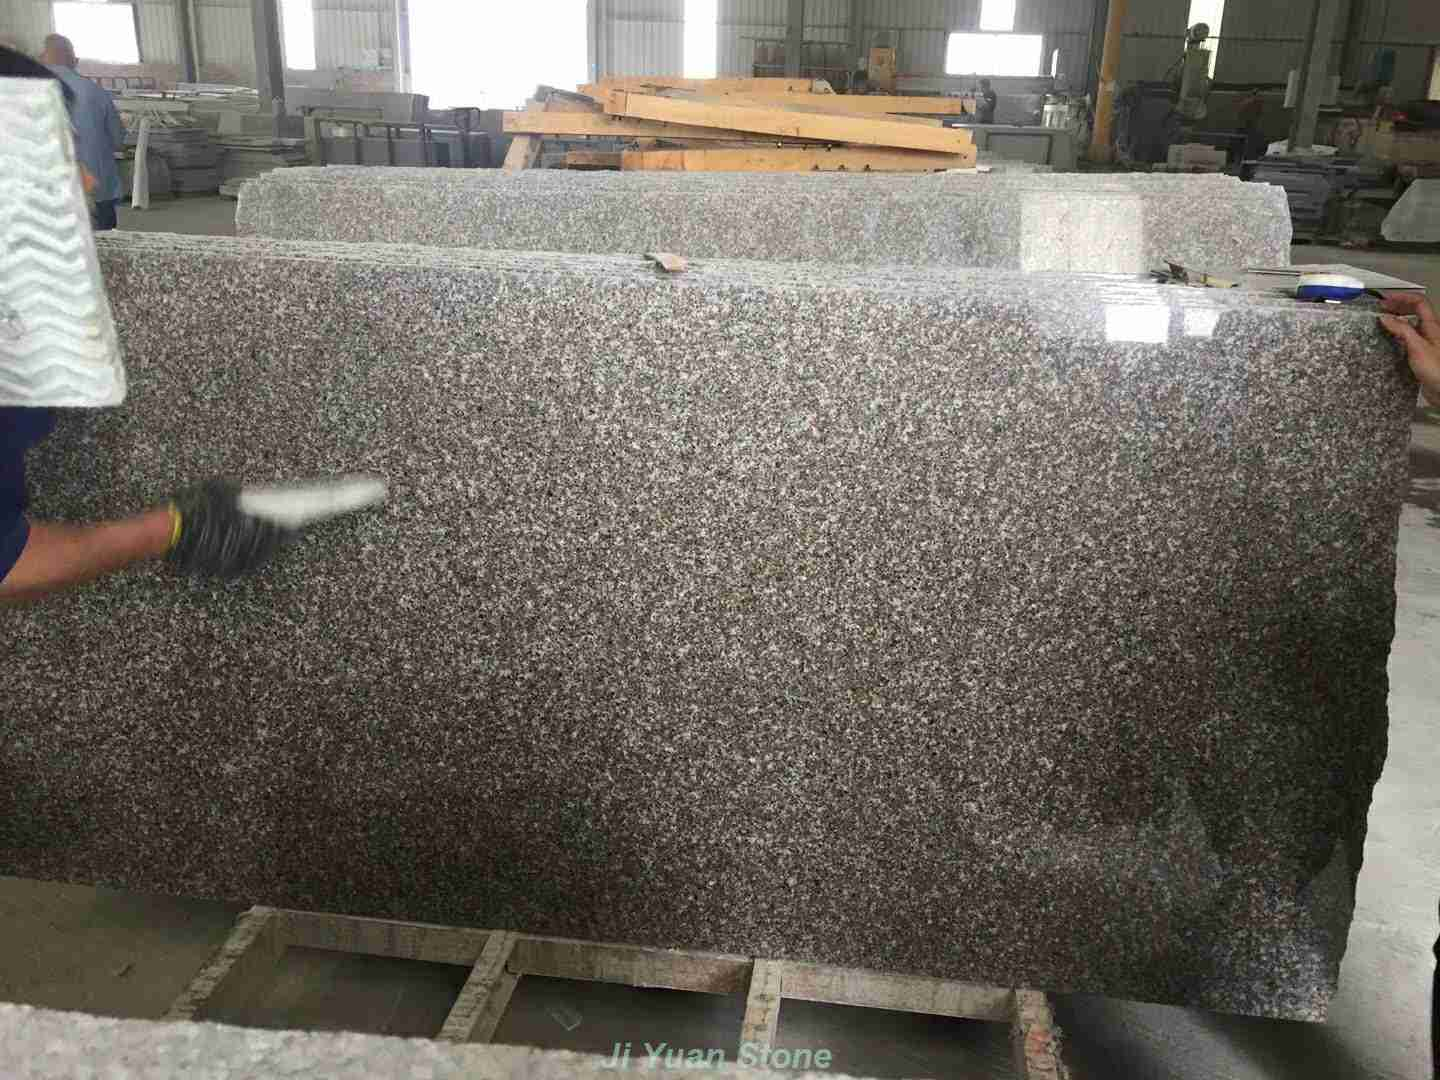 Pink countertops,light pink stone,brown countertops,pink stone name,misty brown,pink granite rock,pink natural stone,dark pink stone,green and pink stone,g664 granite